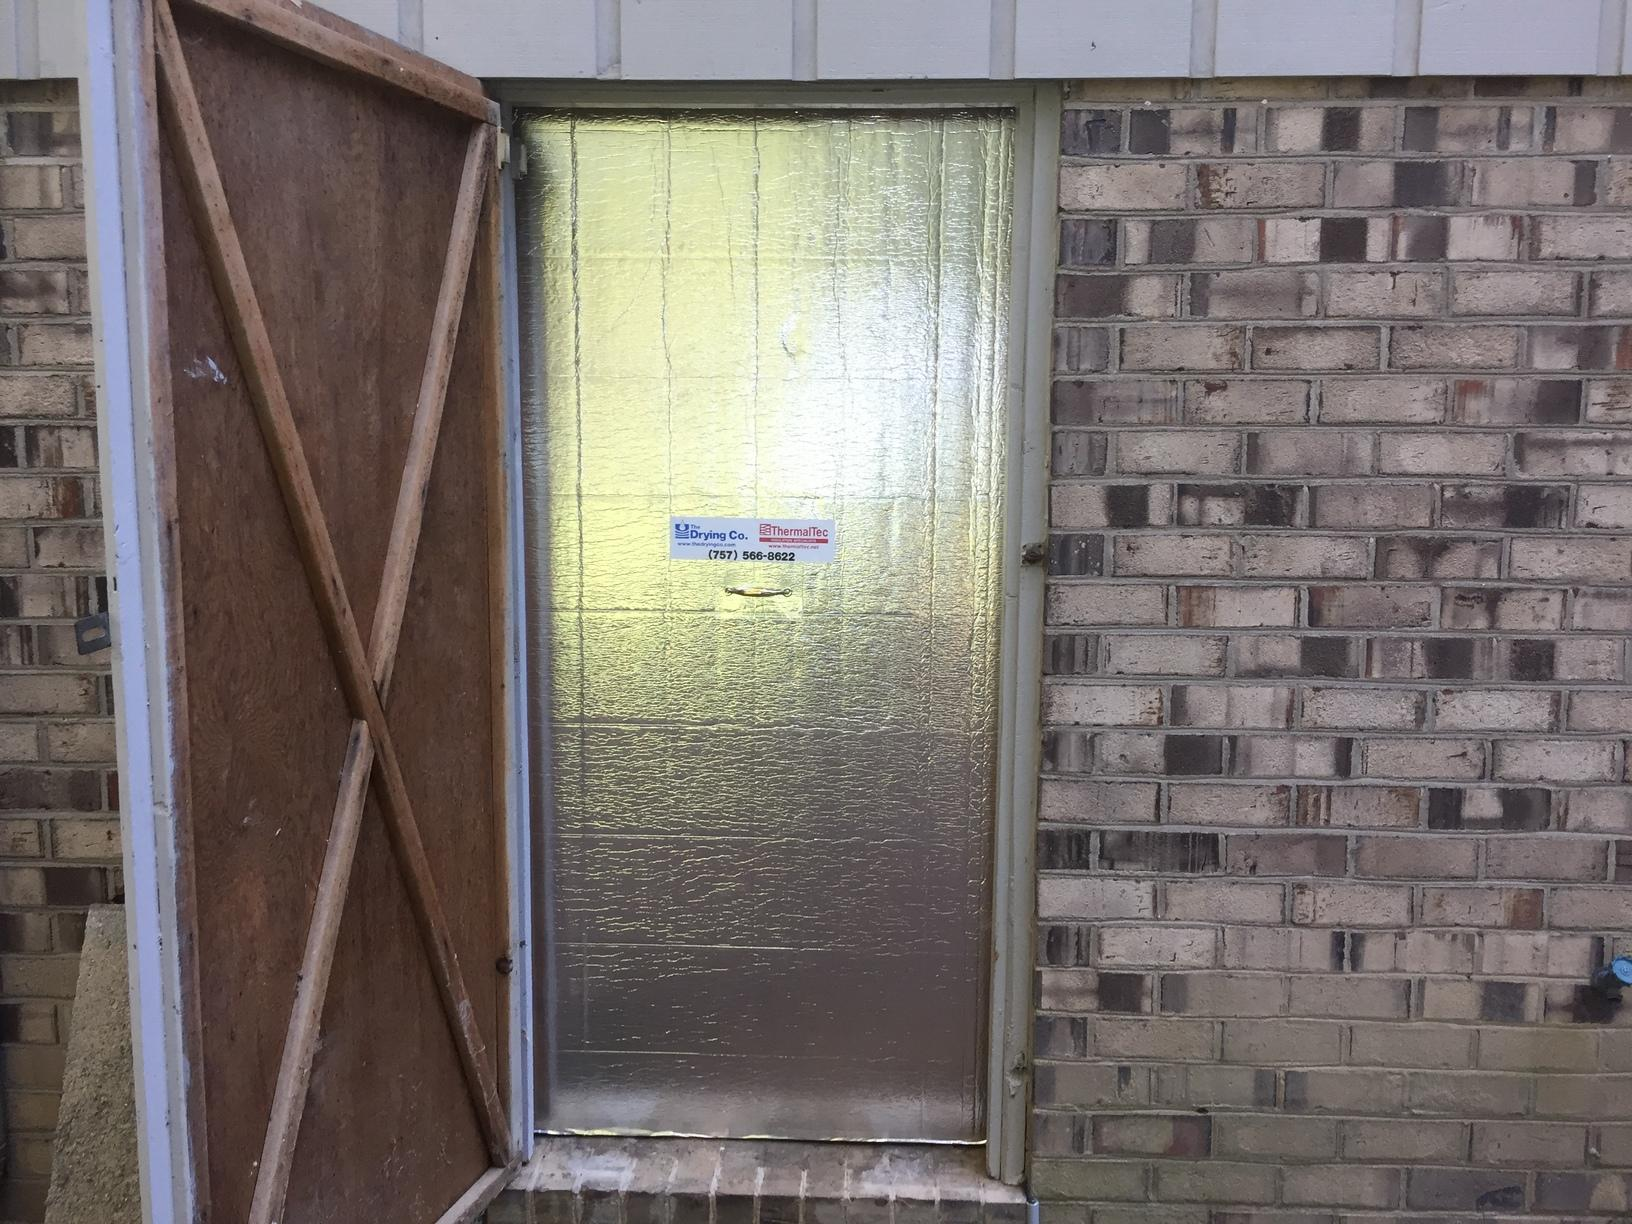 Friction Fit Door - Richmond Crawl Space Encapsulation - After Photo